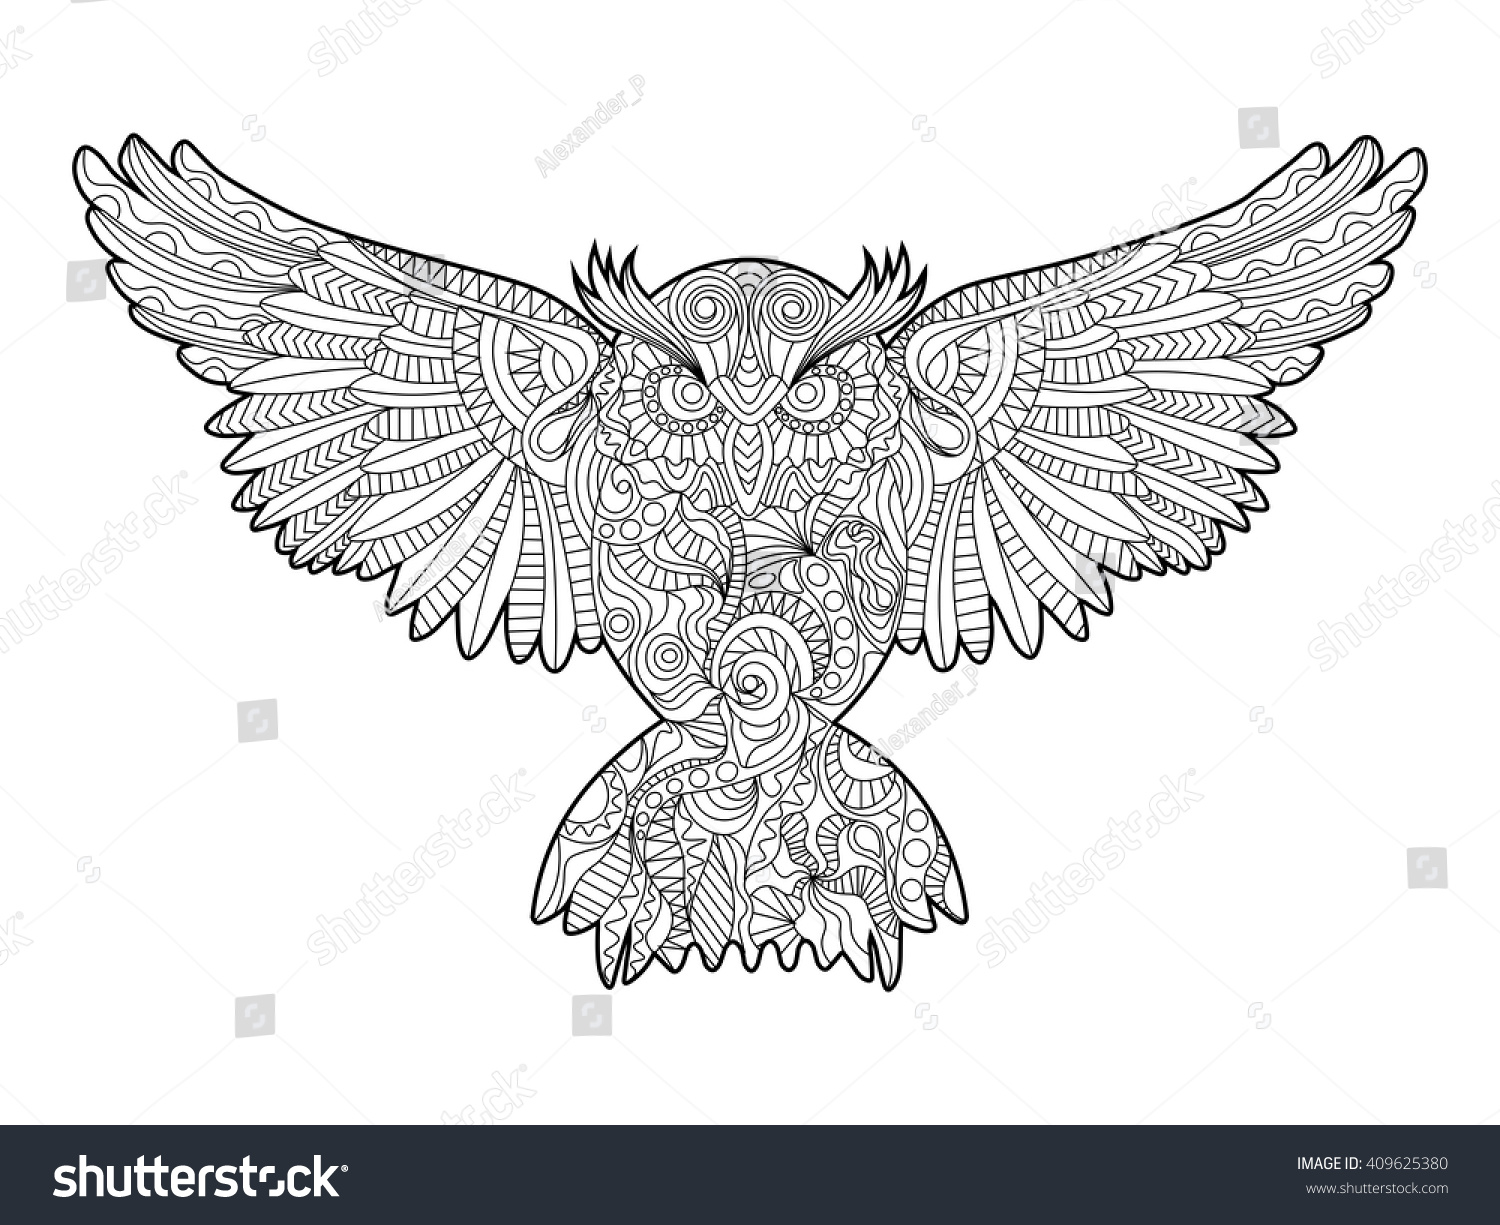 owl bird coloring book for adults vector illustration anti stress coloring for adult